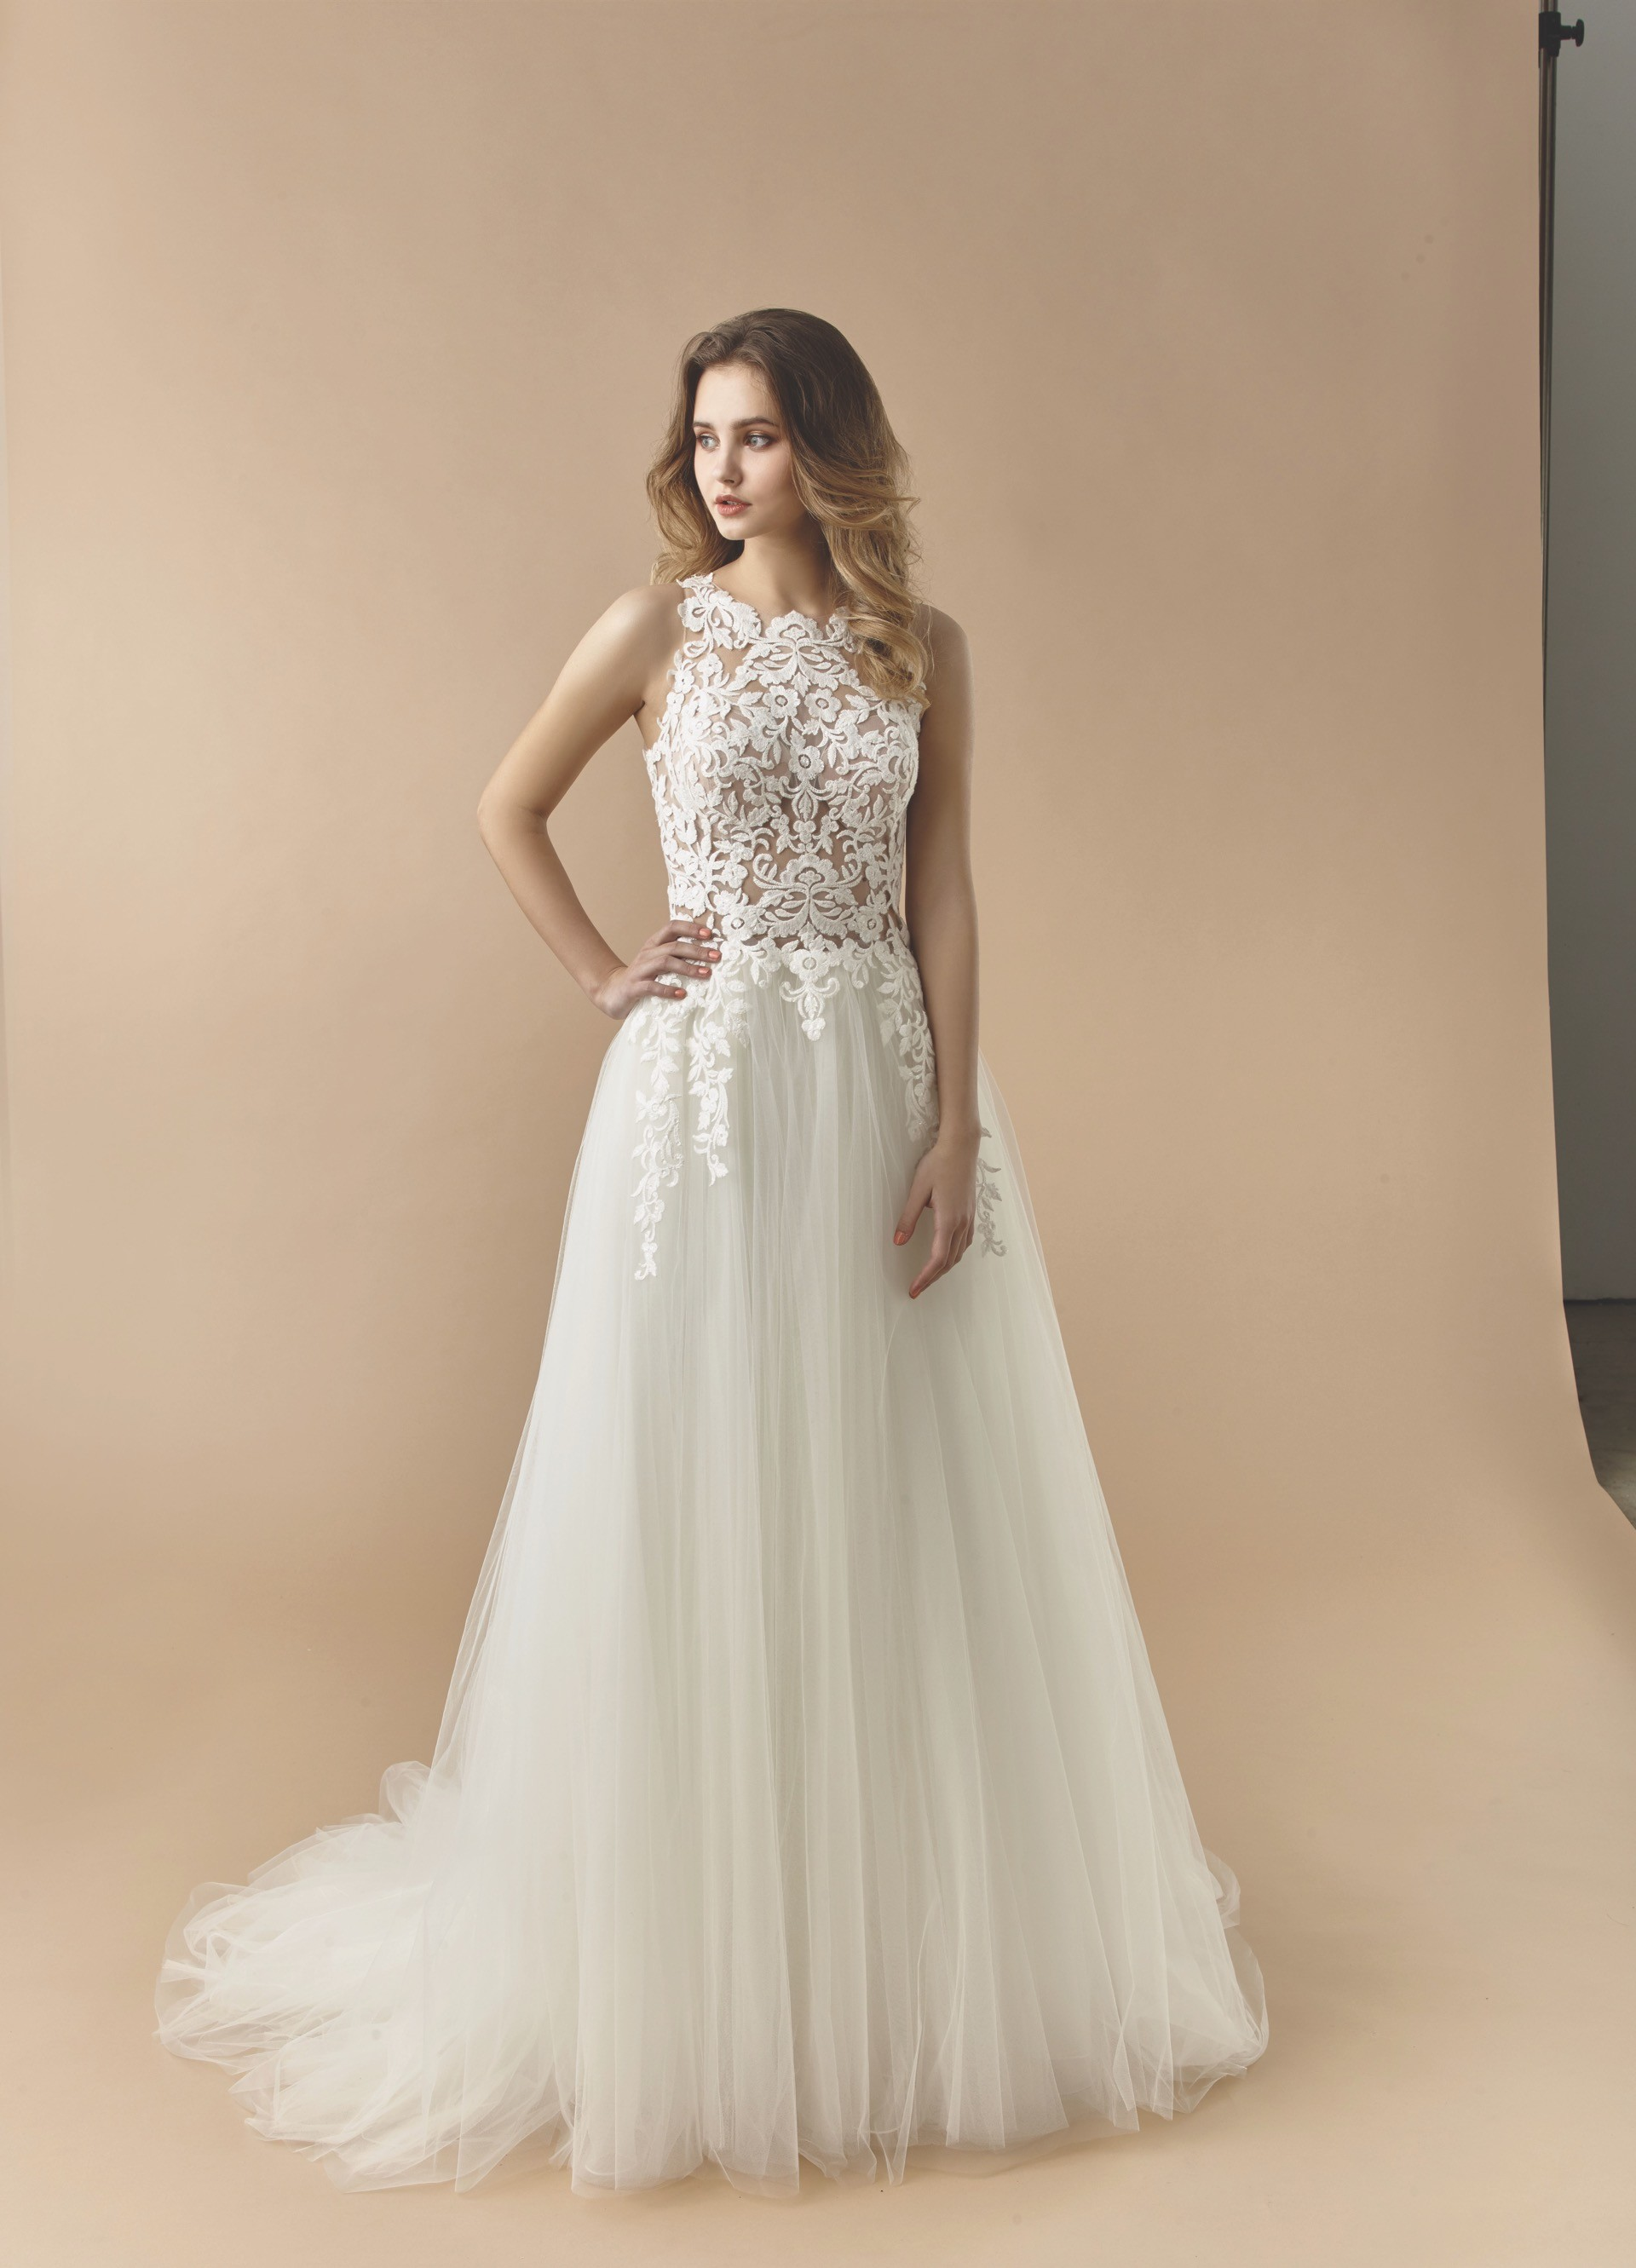 Brautkleid Modell BT 20-10 aus der Beautiful Bridal Kollektion 2020